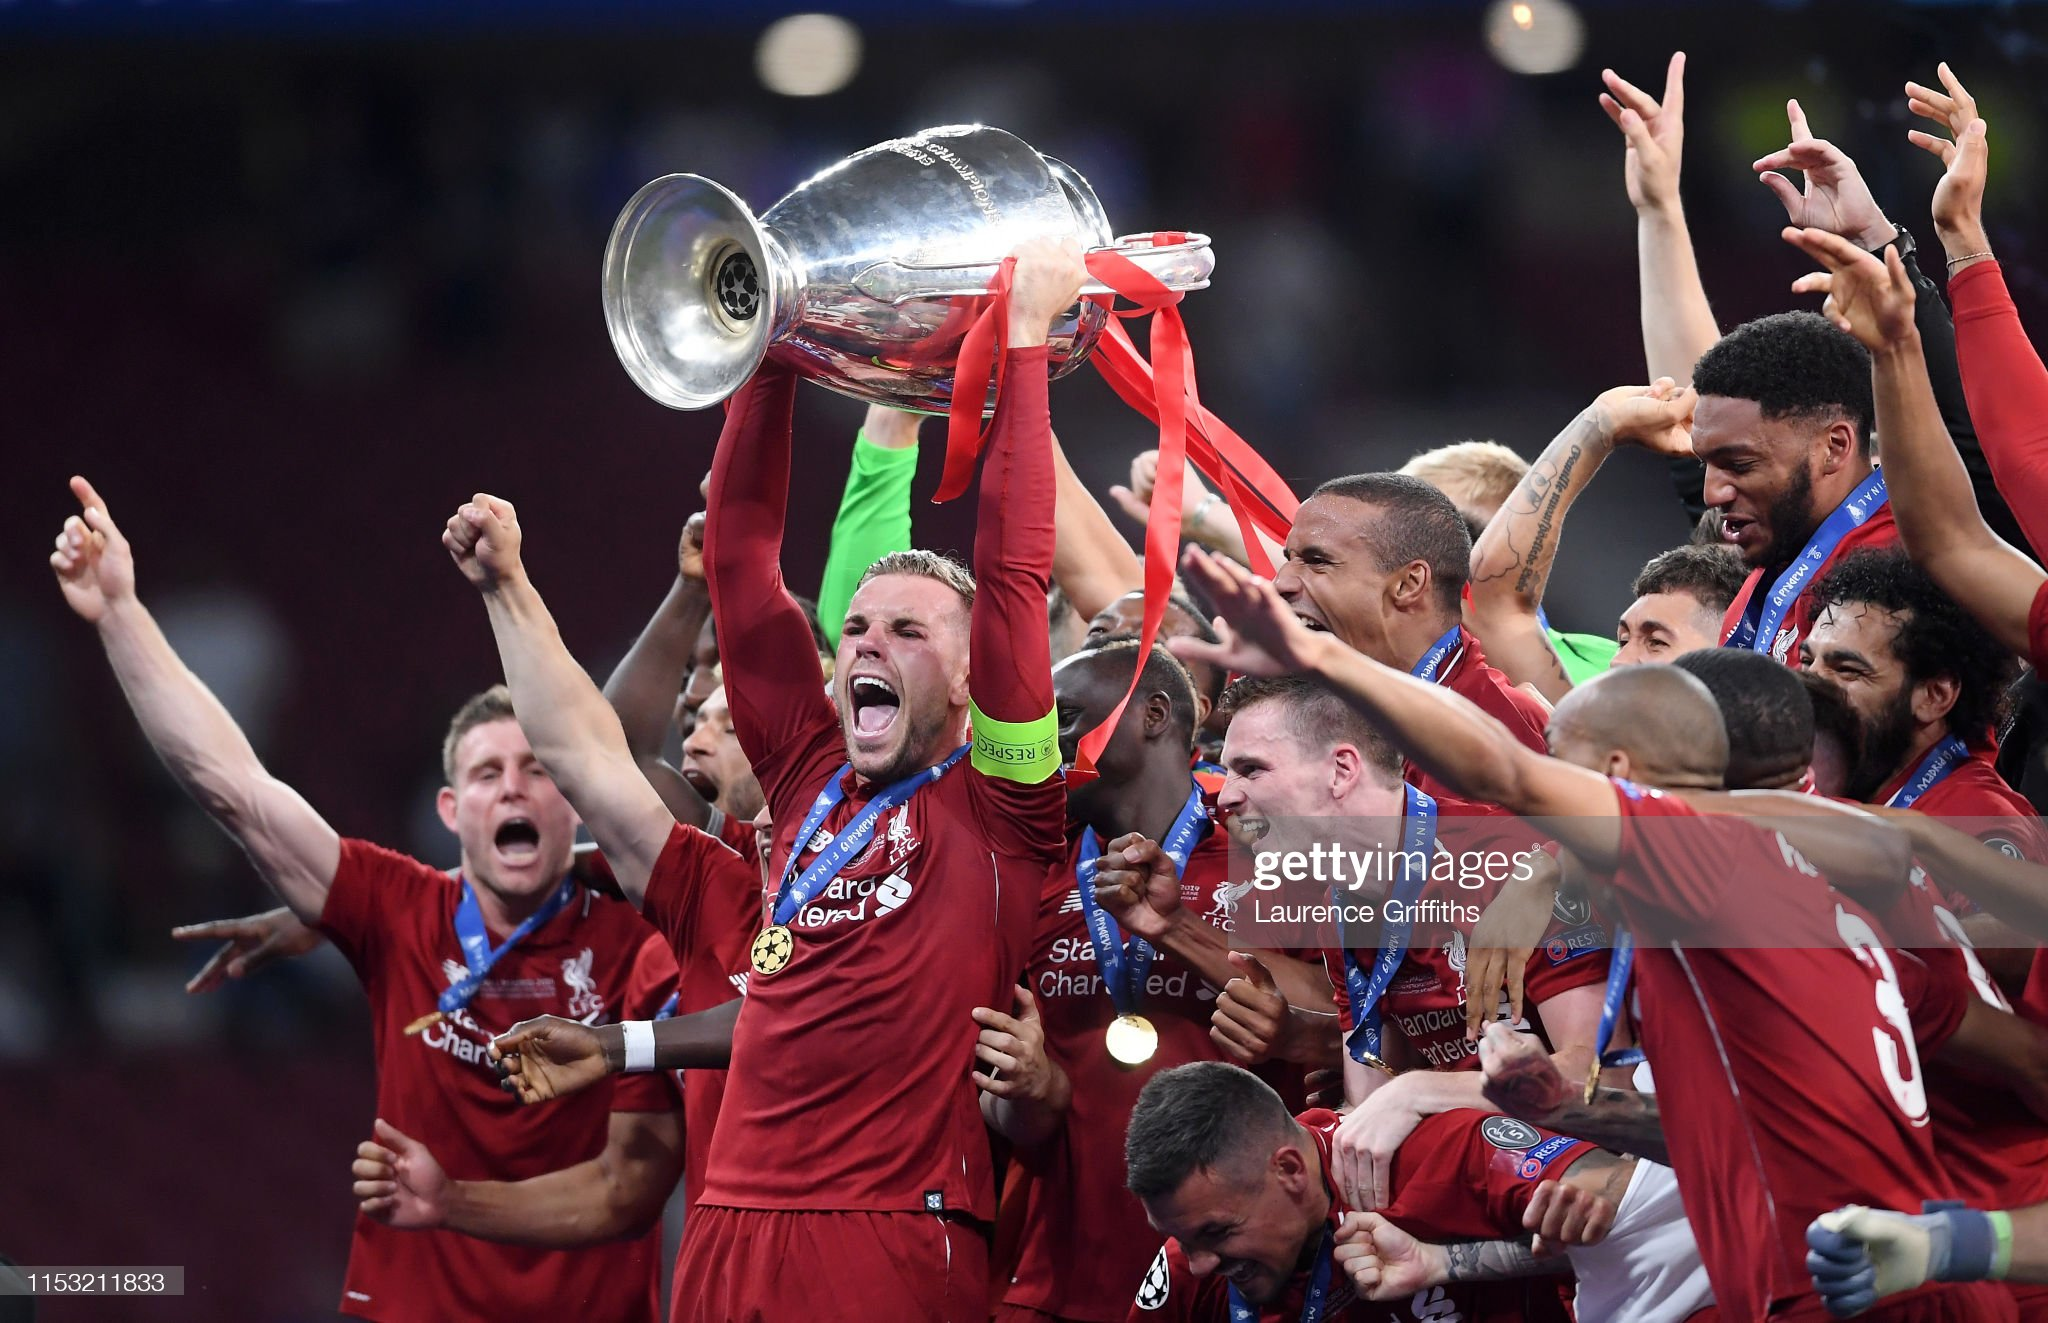 https://media.gettyimages.com/photos/jordan-henderson-of-liverpool-lifts-the-champions-league-trophy-after-picture-id1153211833?s=2048x2048